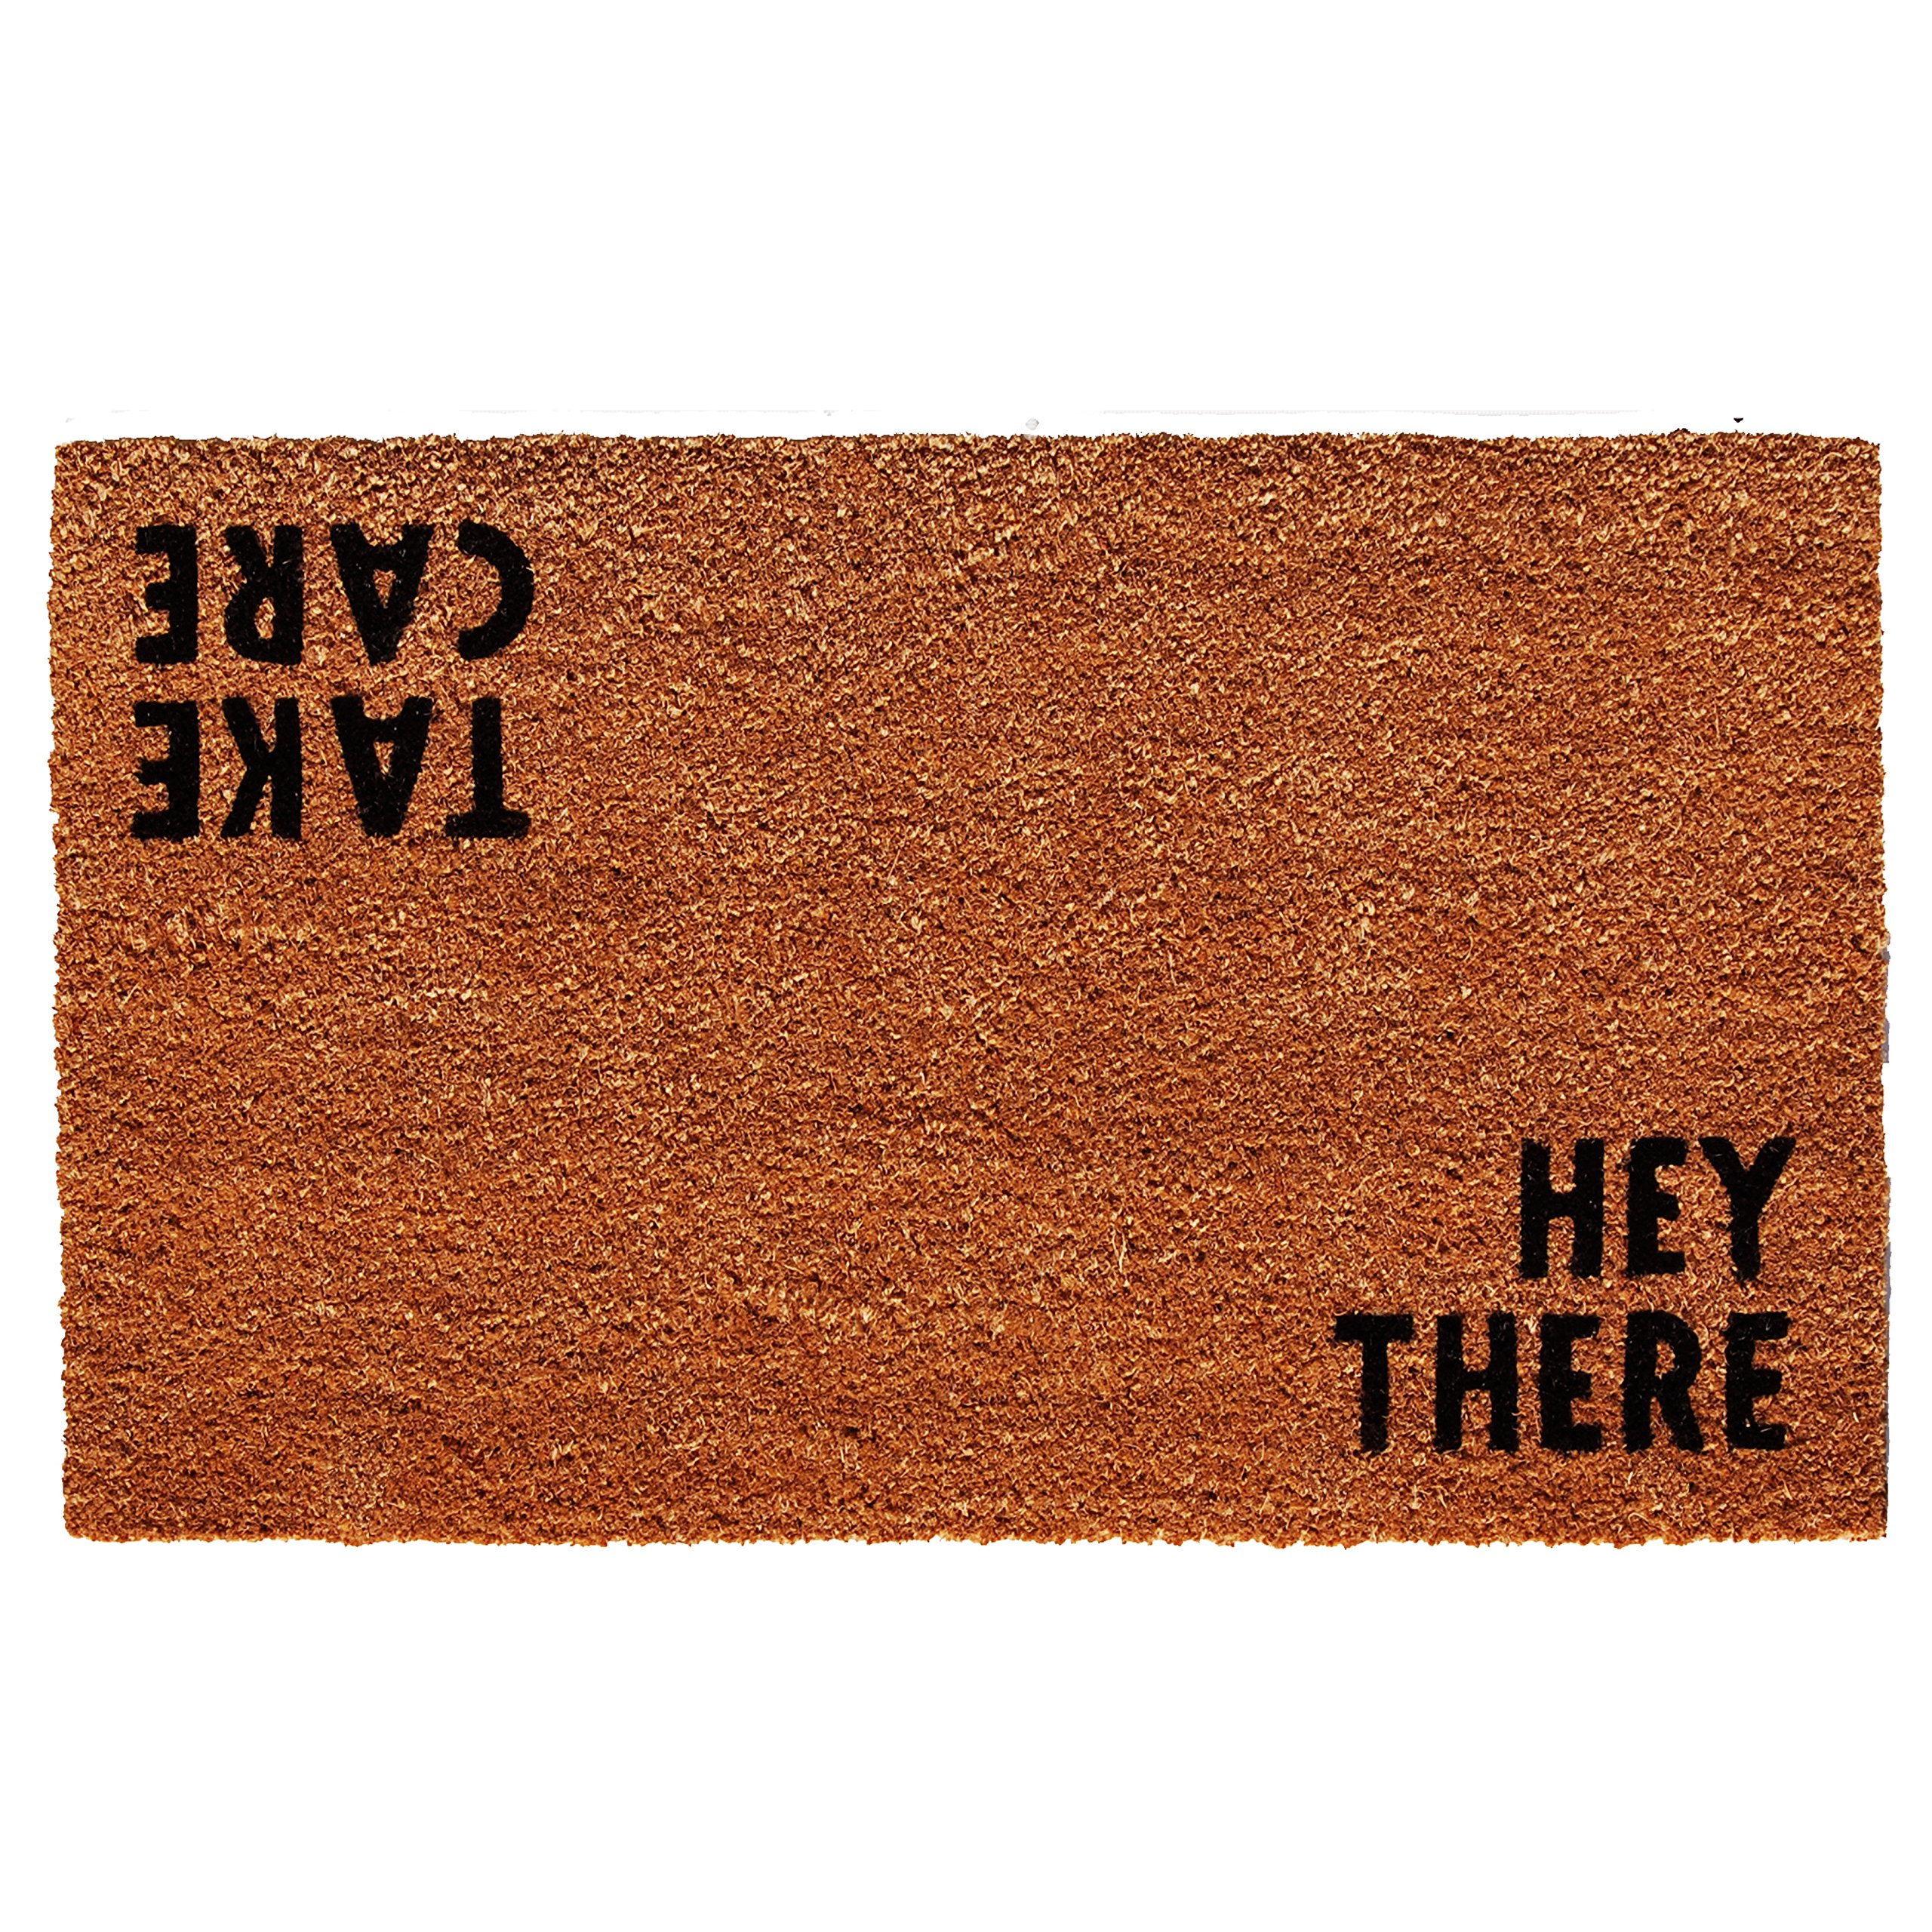 Calloway Mills Home & More 100511729 Hey There Doormat, 17'' x 29'' x 0.60'', Natural/Black